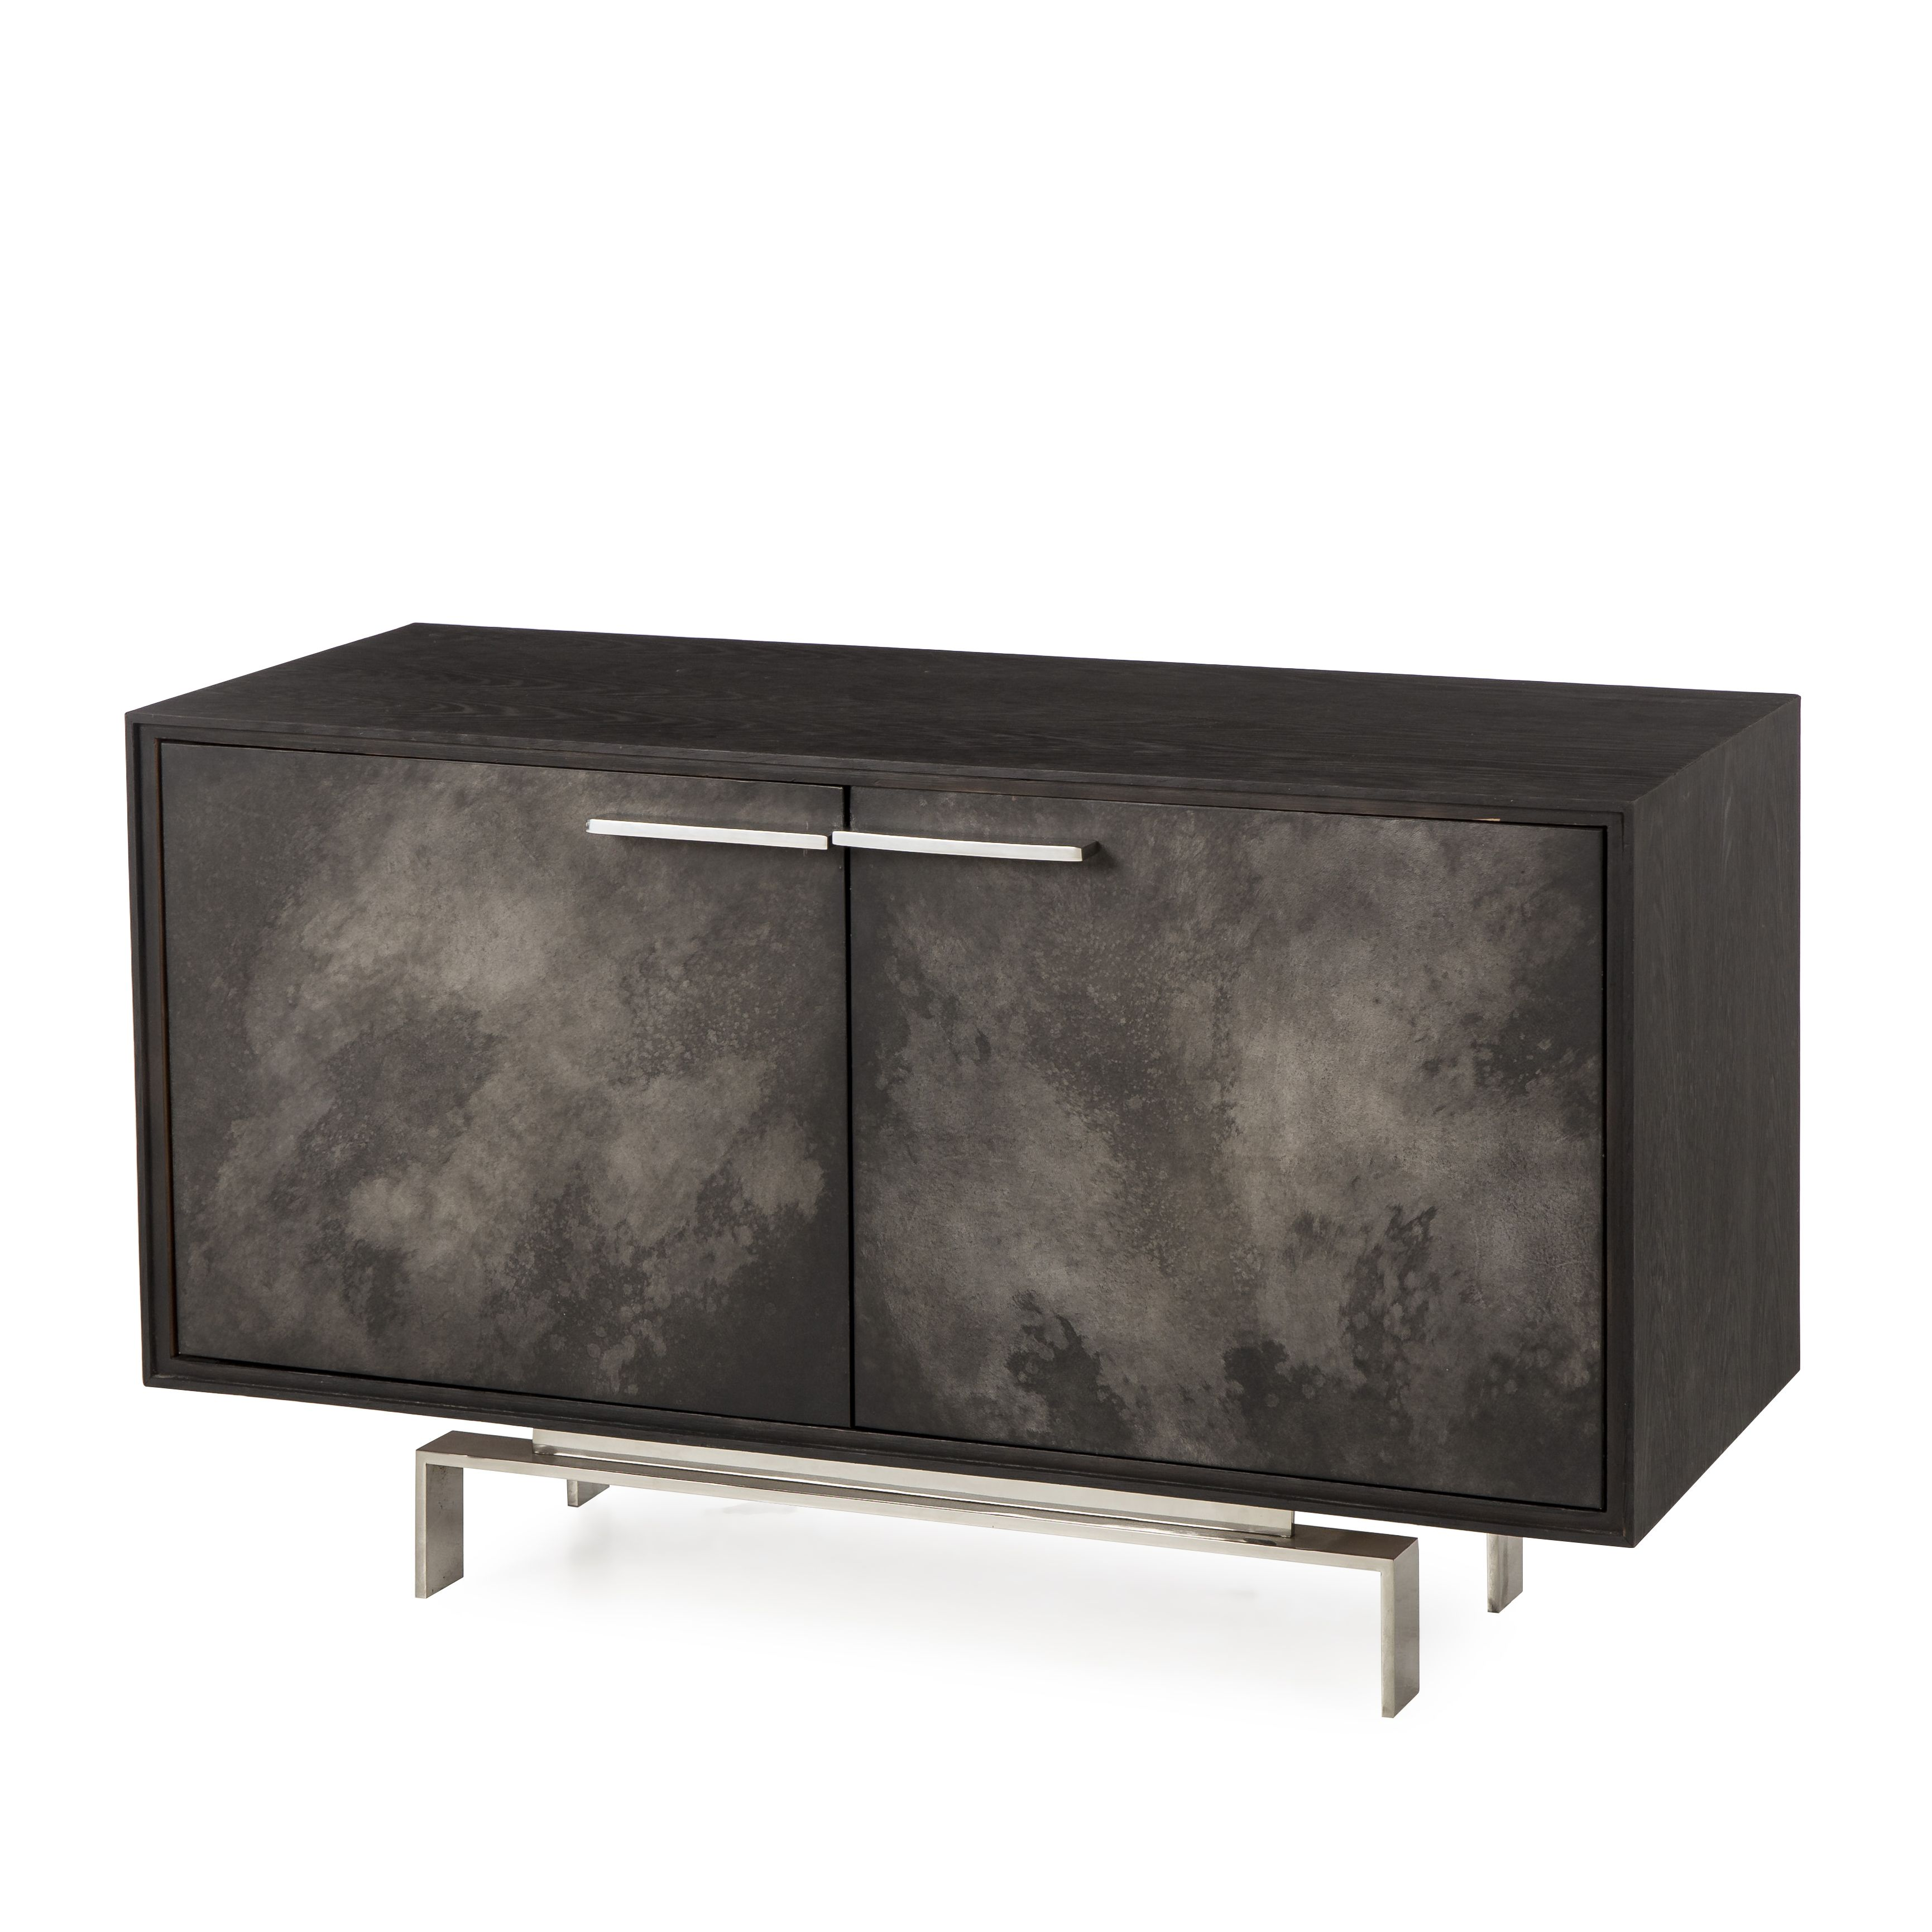 Credenza bodden credenza dyed black oak veneer vellum door credenza bodden credenza dyed black oak veneer vellum door fronts and a stainless small sideboardconsole tablesconsole geotapseo Choice Image